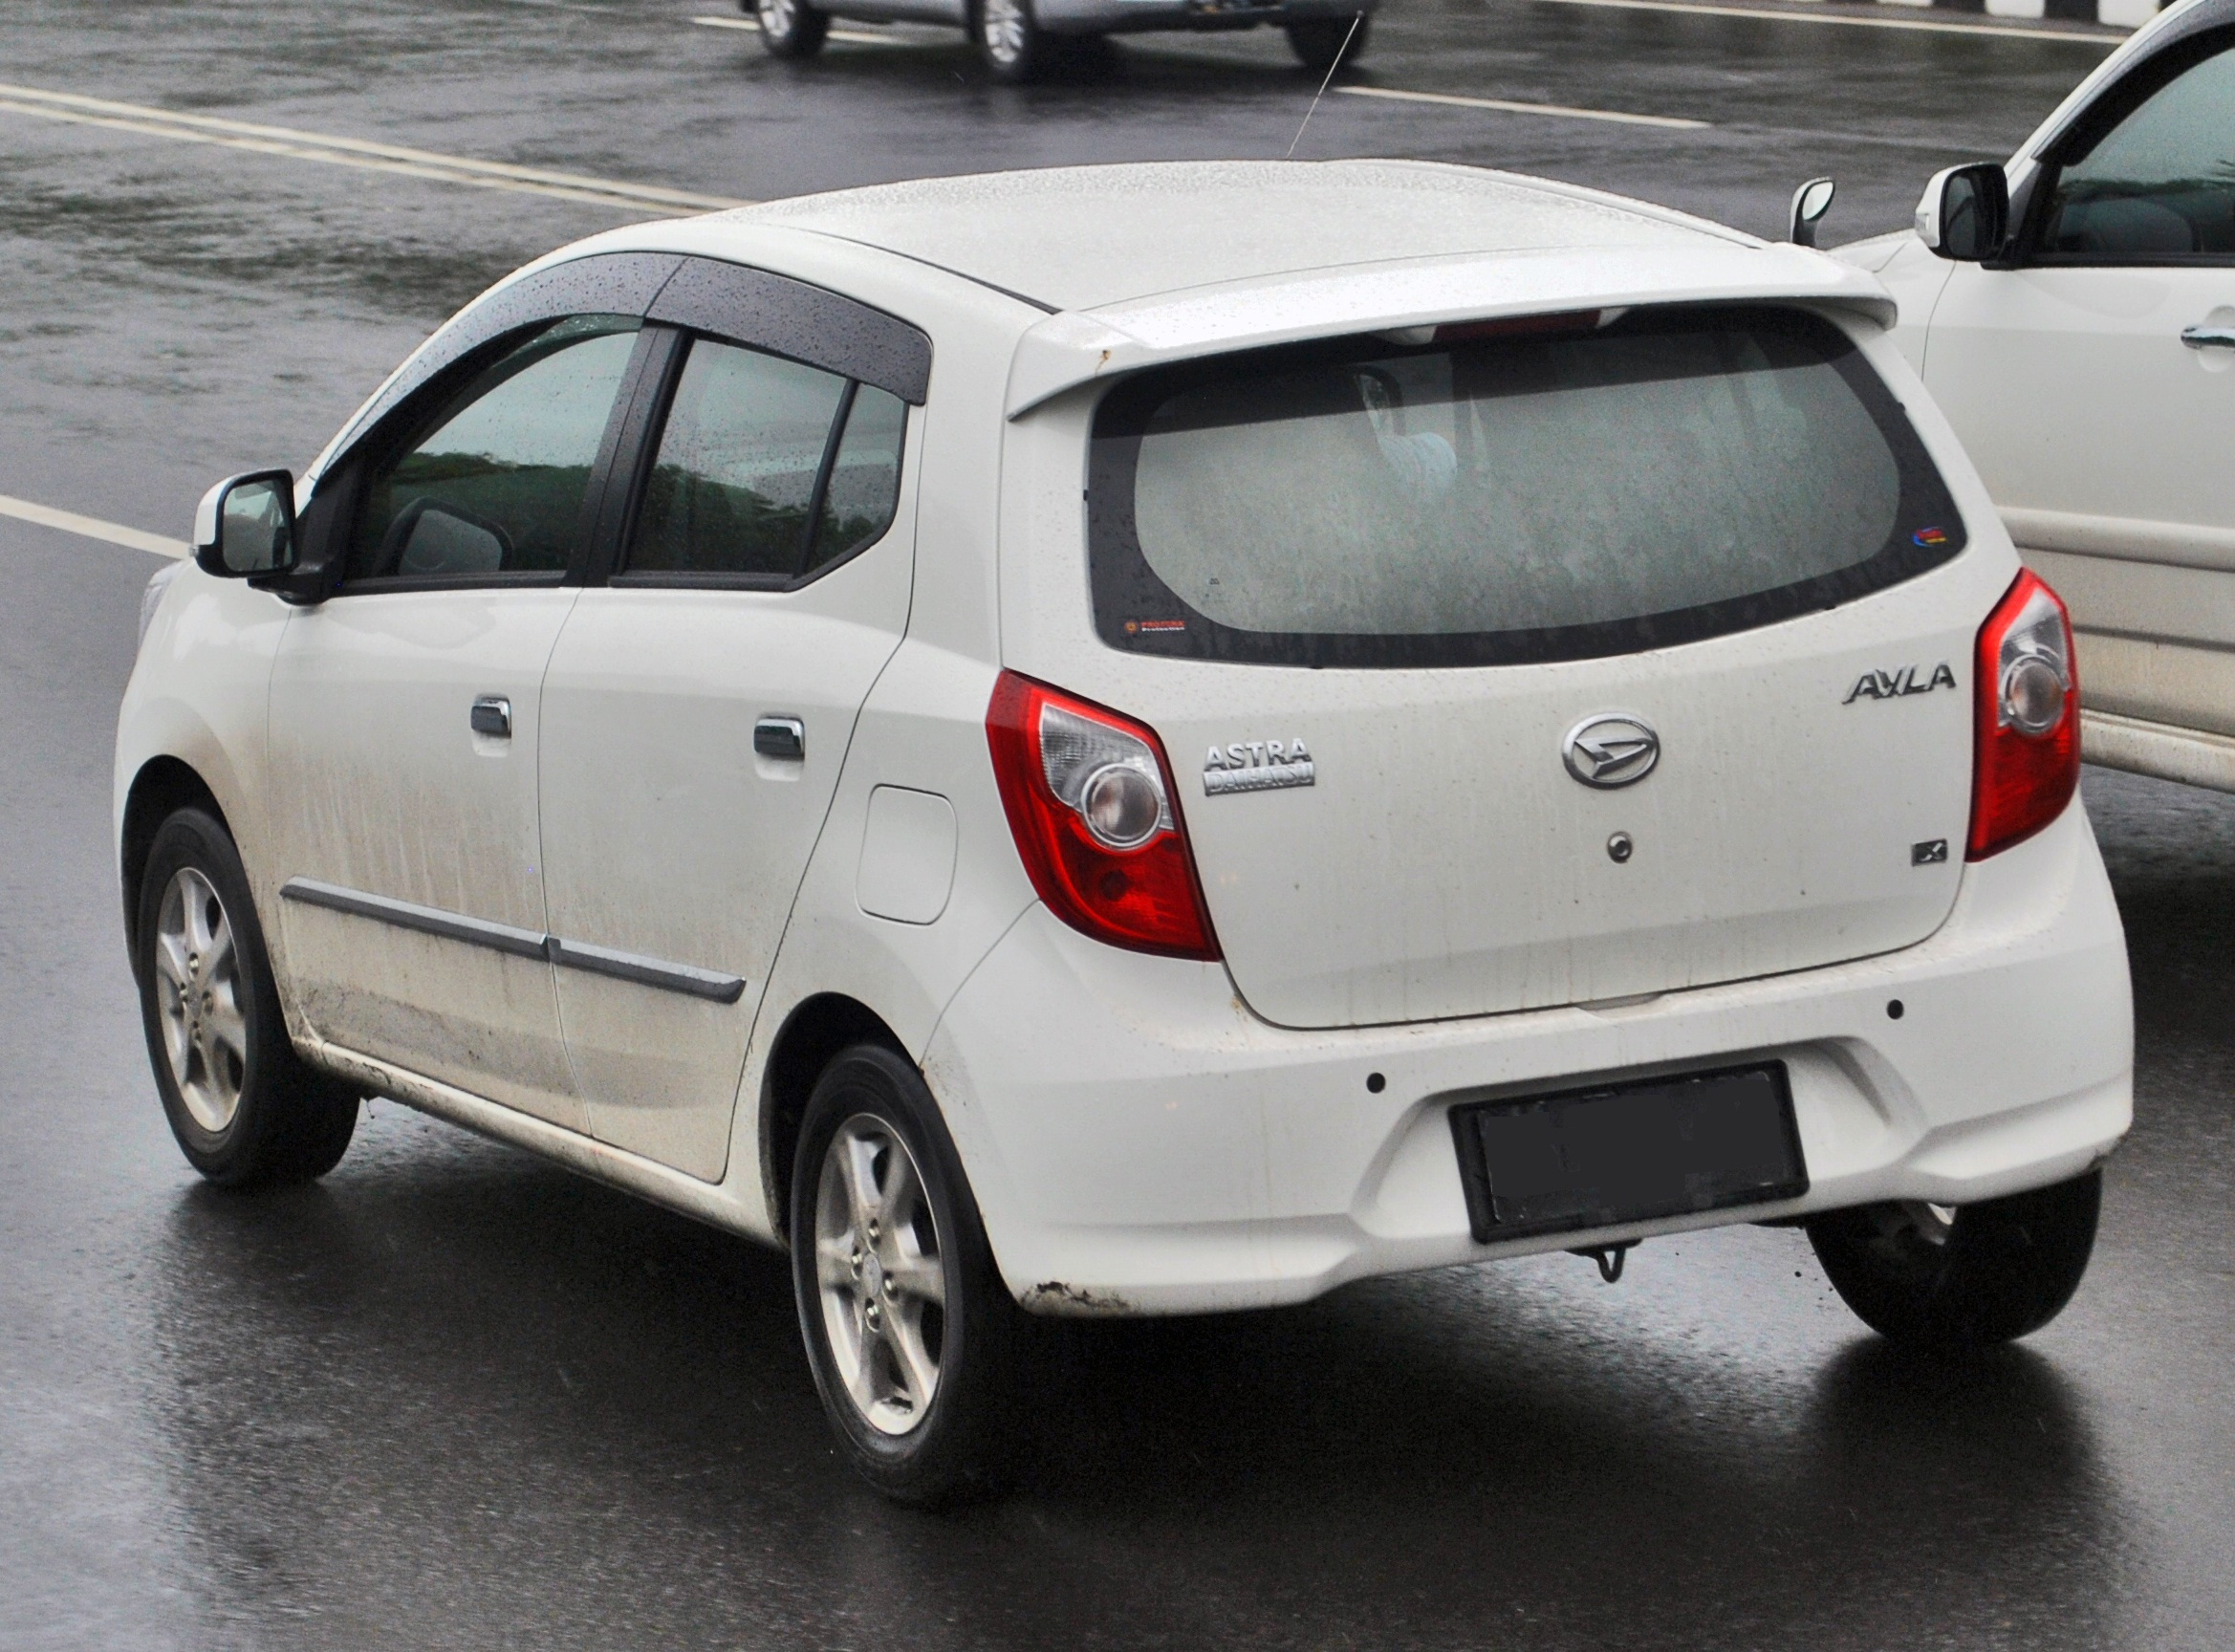 Ã�ァイル Daihatsu Ayla Rear View Jpg Wikipedia